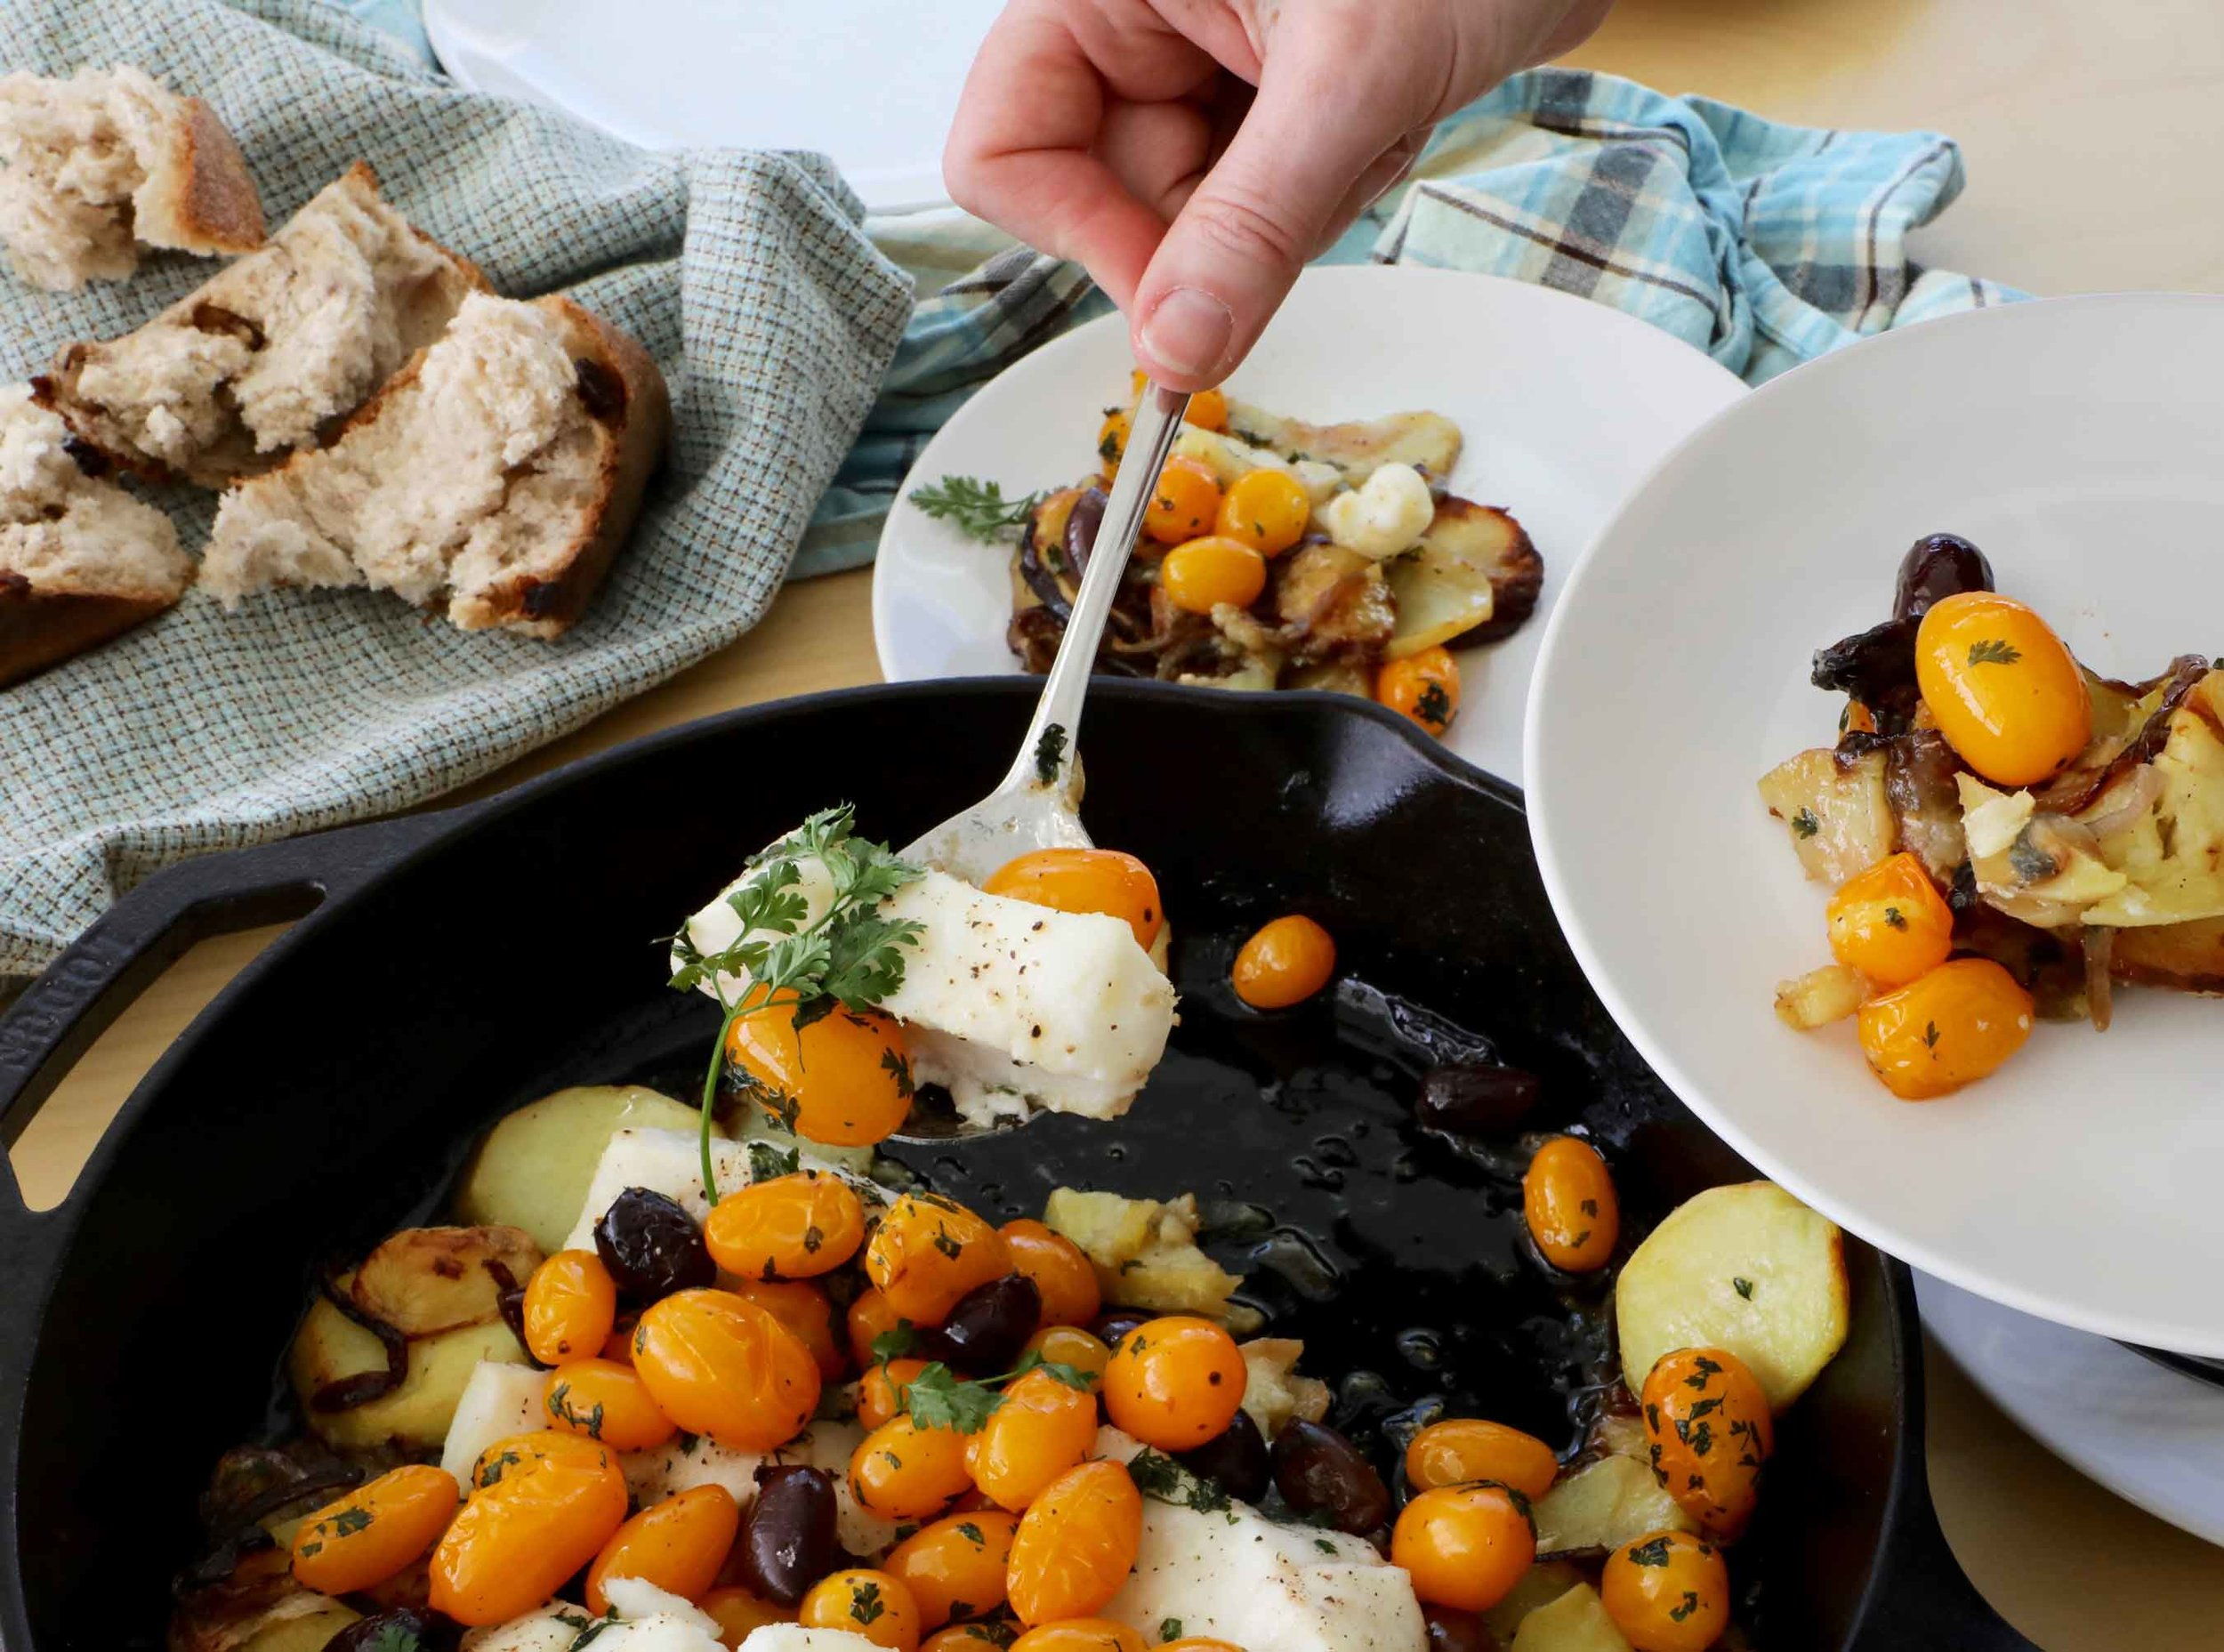 Serving up some fish, caramelized potatoes, olives and tomatoes straight from the skillet at the table. With some crusty bread to sop up the juices, this is a simple and delicious one pot meal.